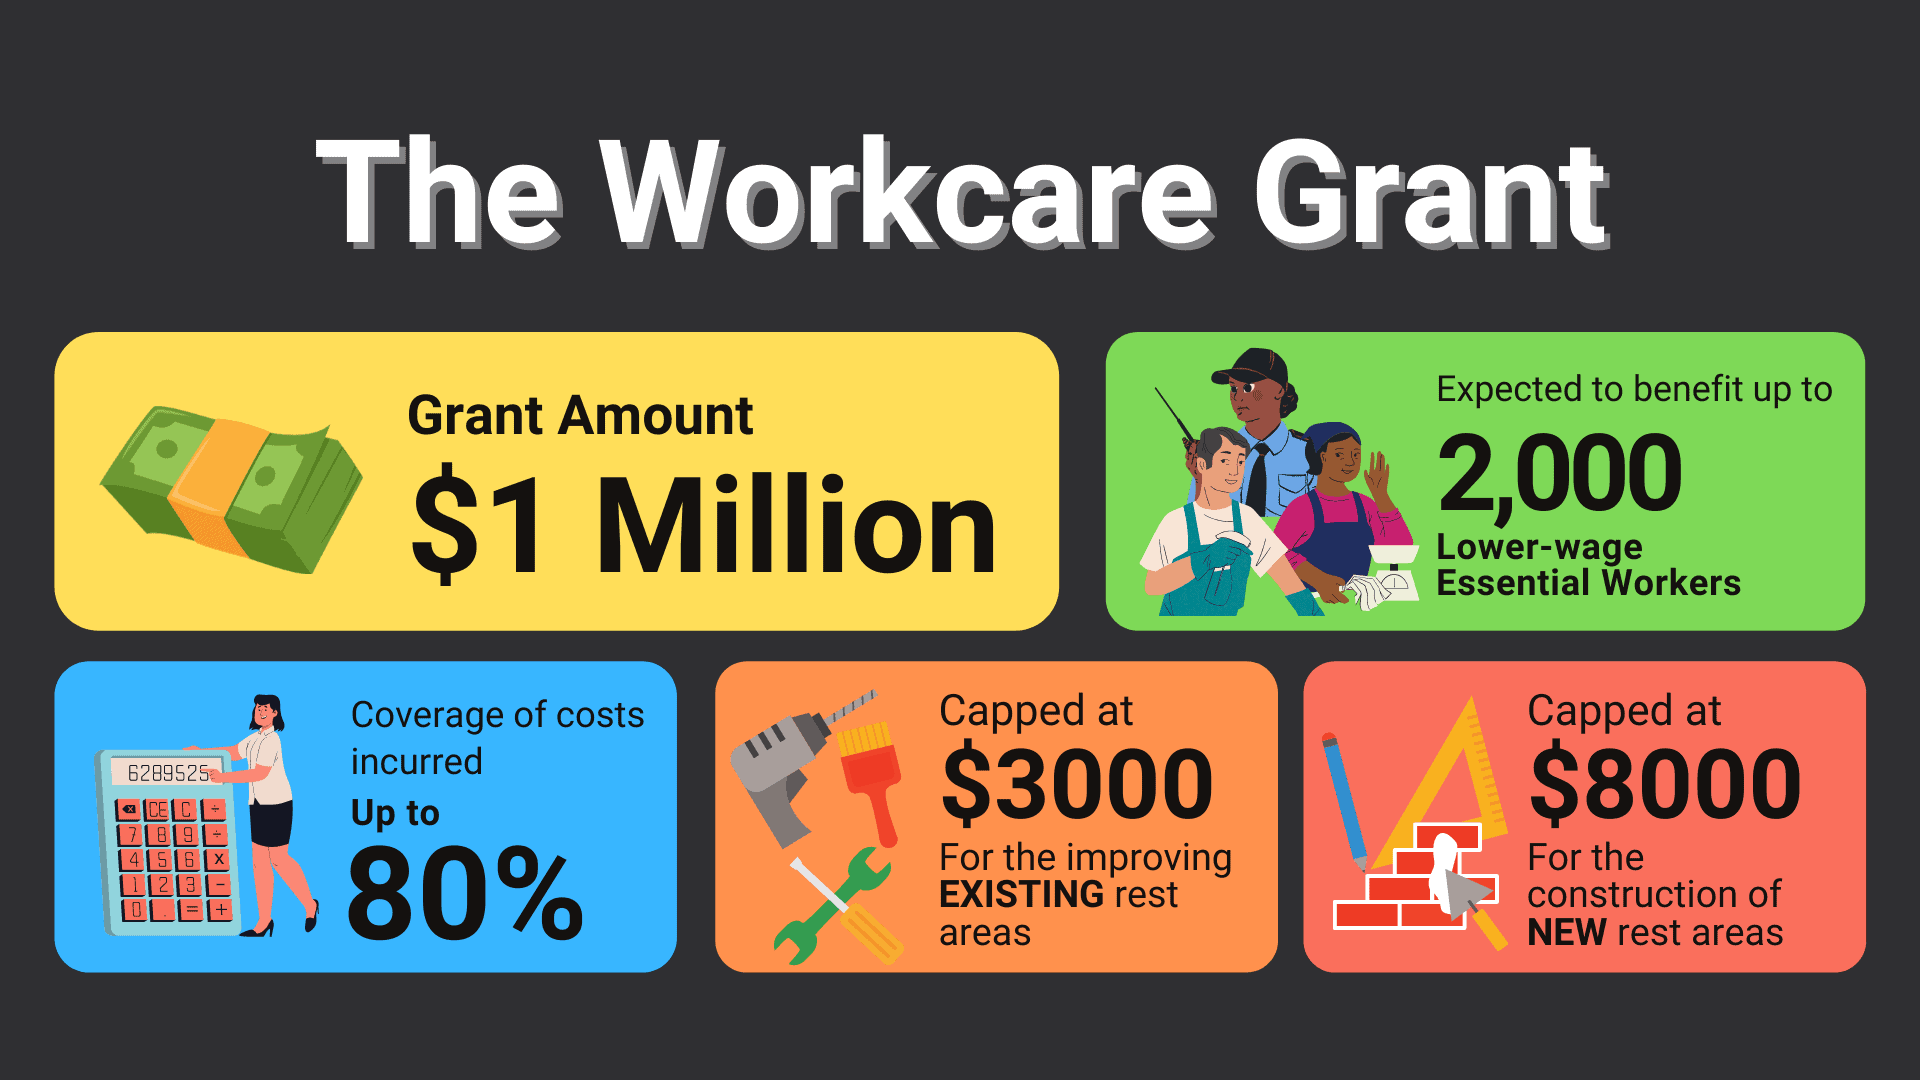 Workcare Grant, $1 Million Workcare Grant to provide rest areas for lower-wage workers